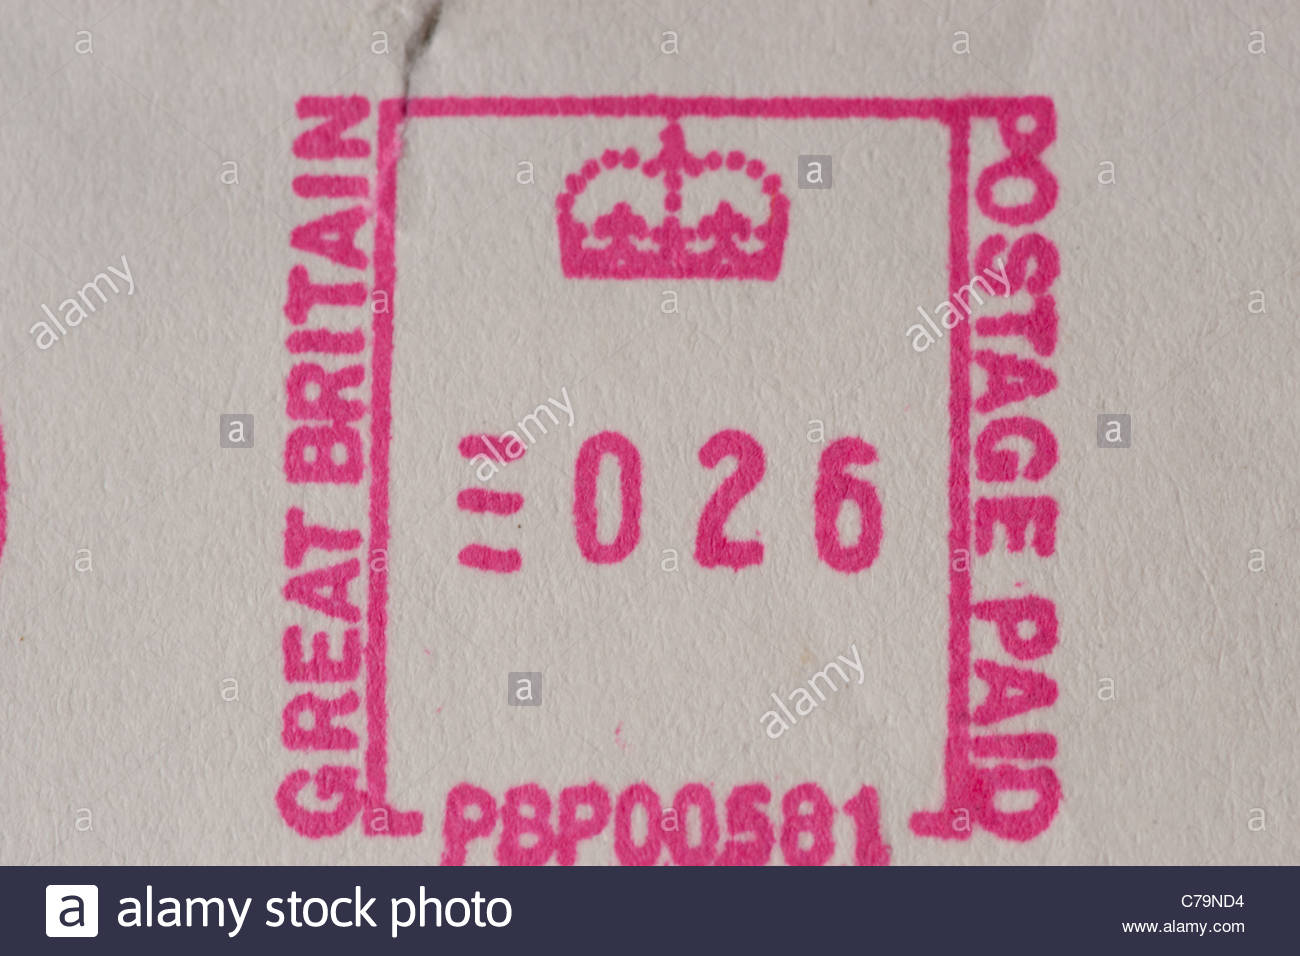 Postage Paid Great Britain - Stock Image